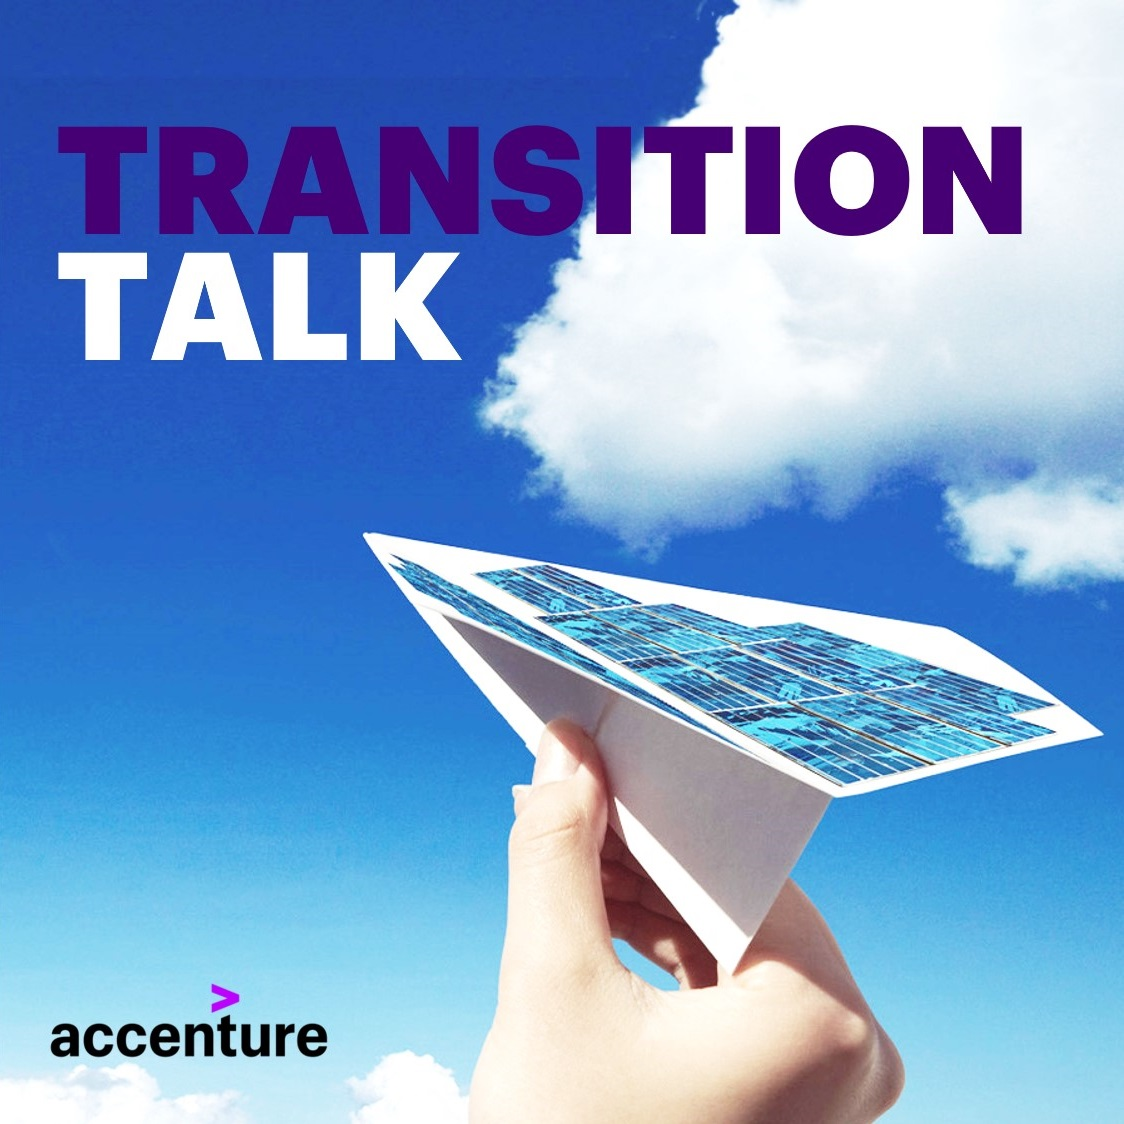 Transition Talk - Accenture's podcast series about the energy transition